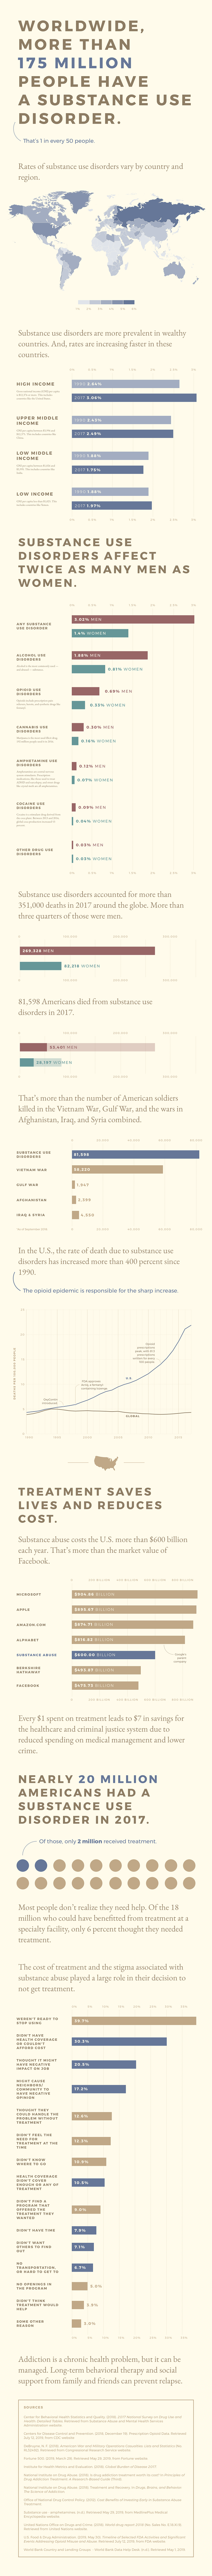 substance use disorder infographic resized